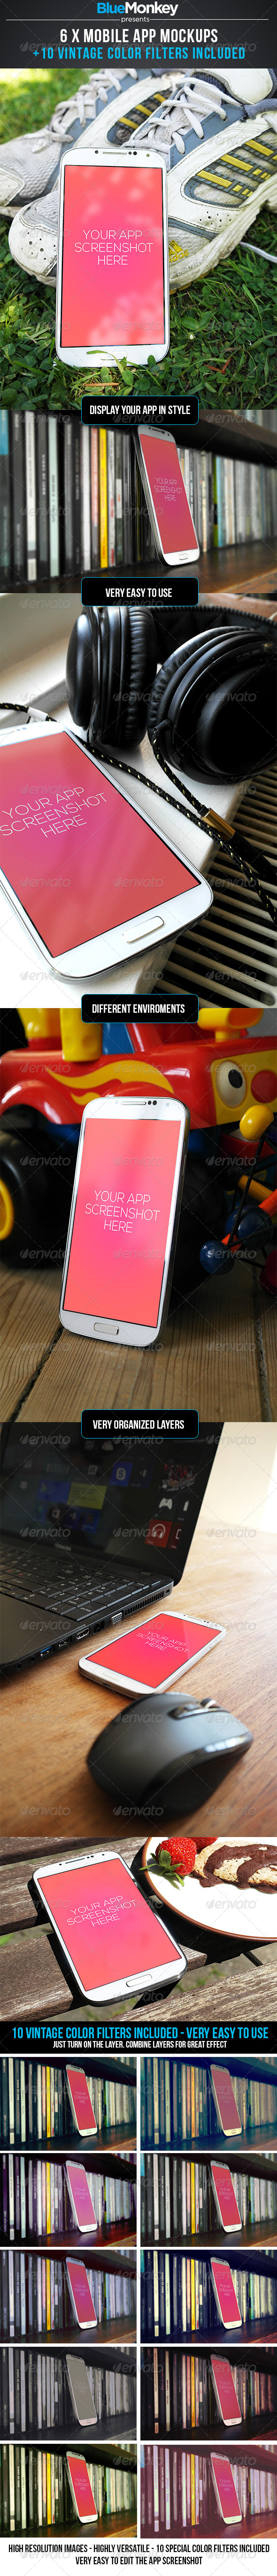 GraphicRiver 6 Phone App Mockups 5007182